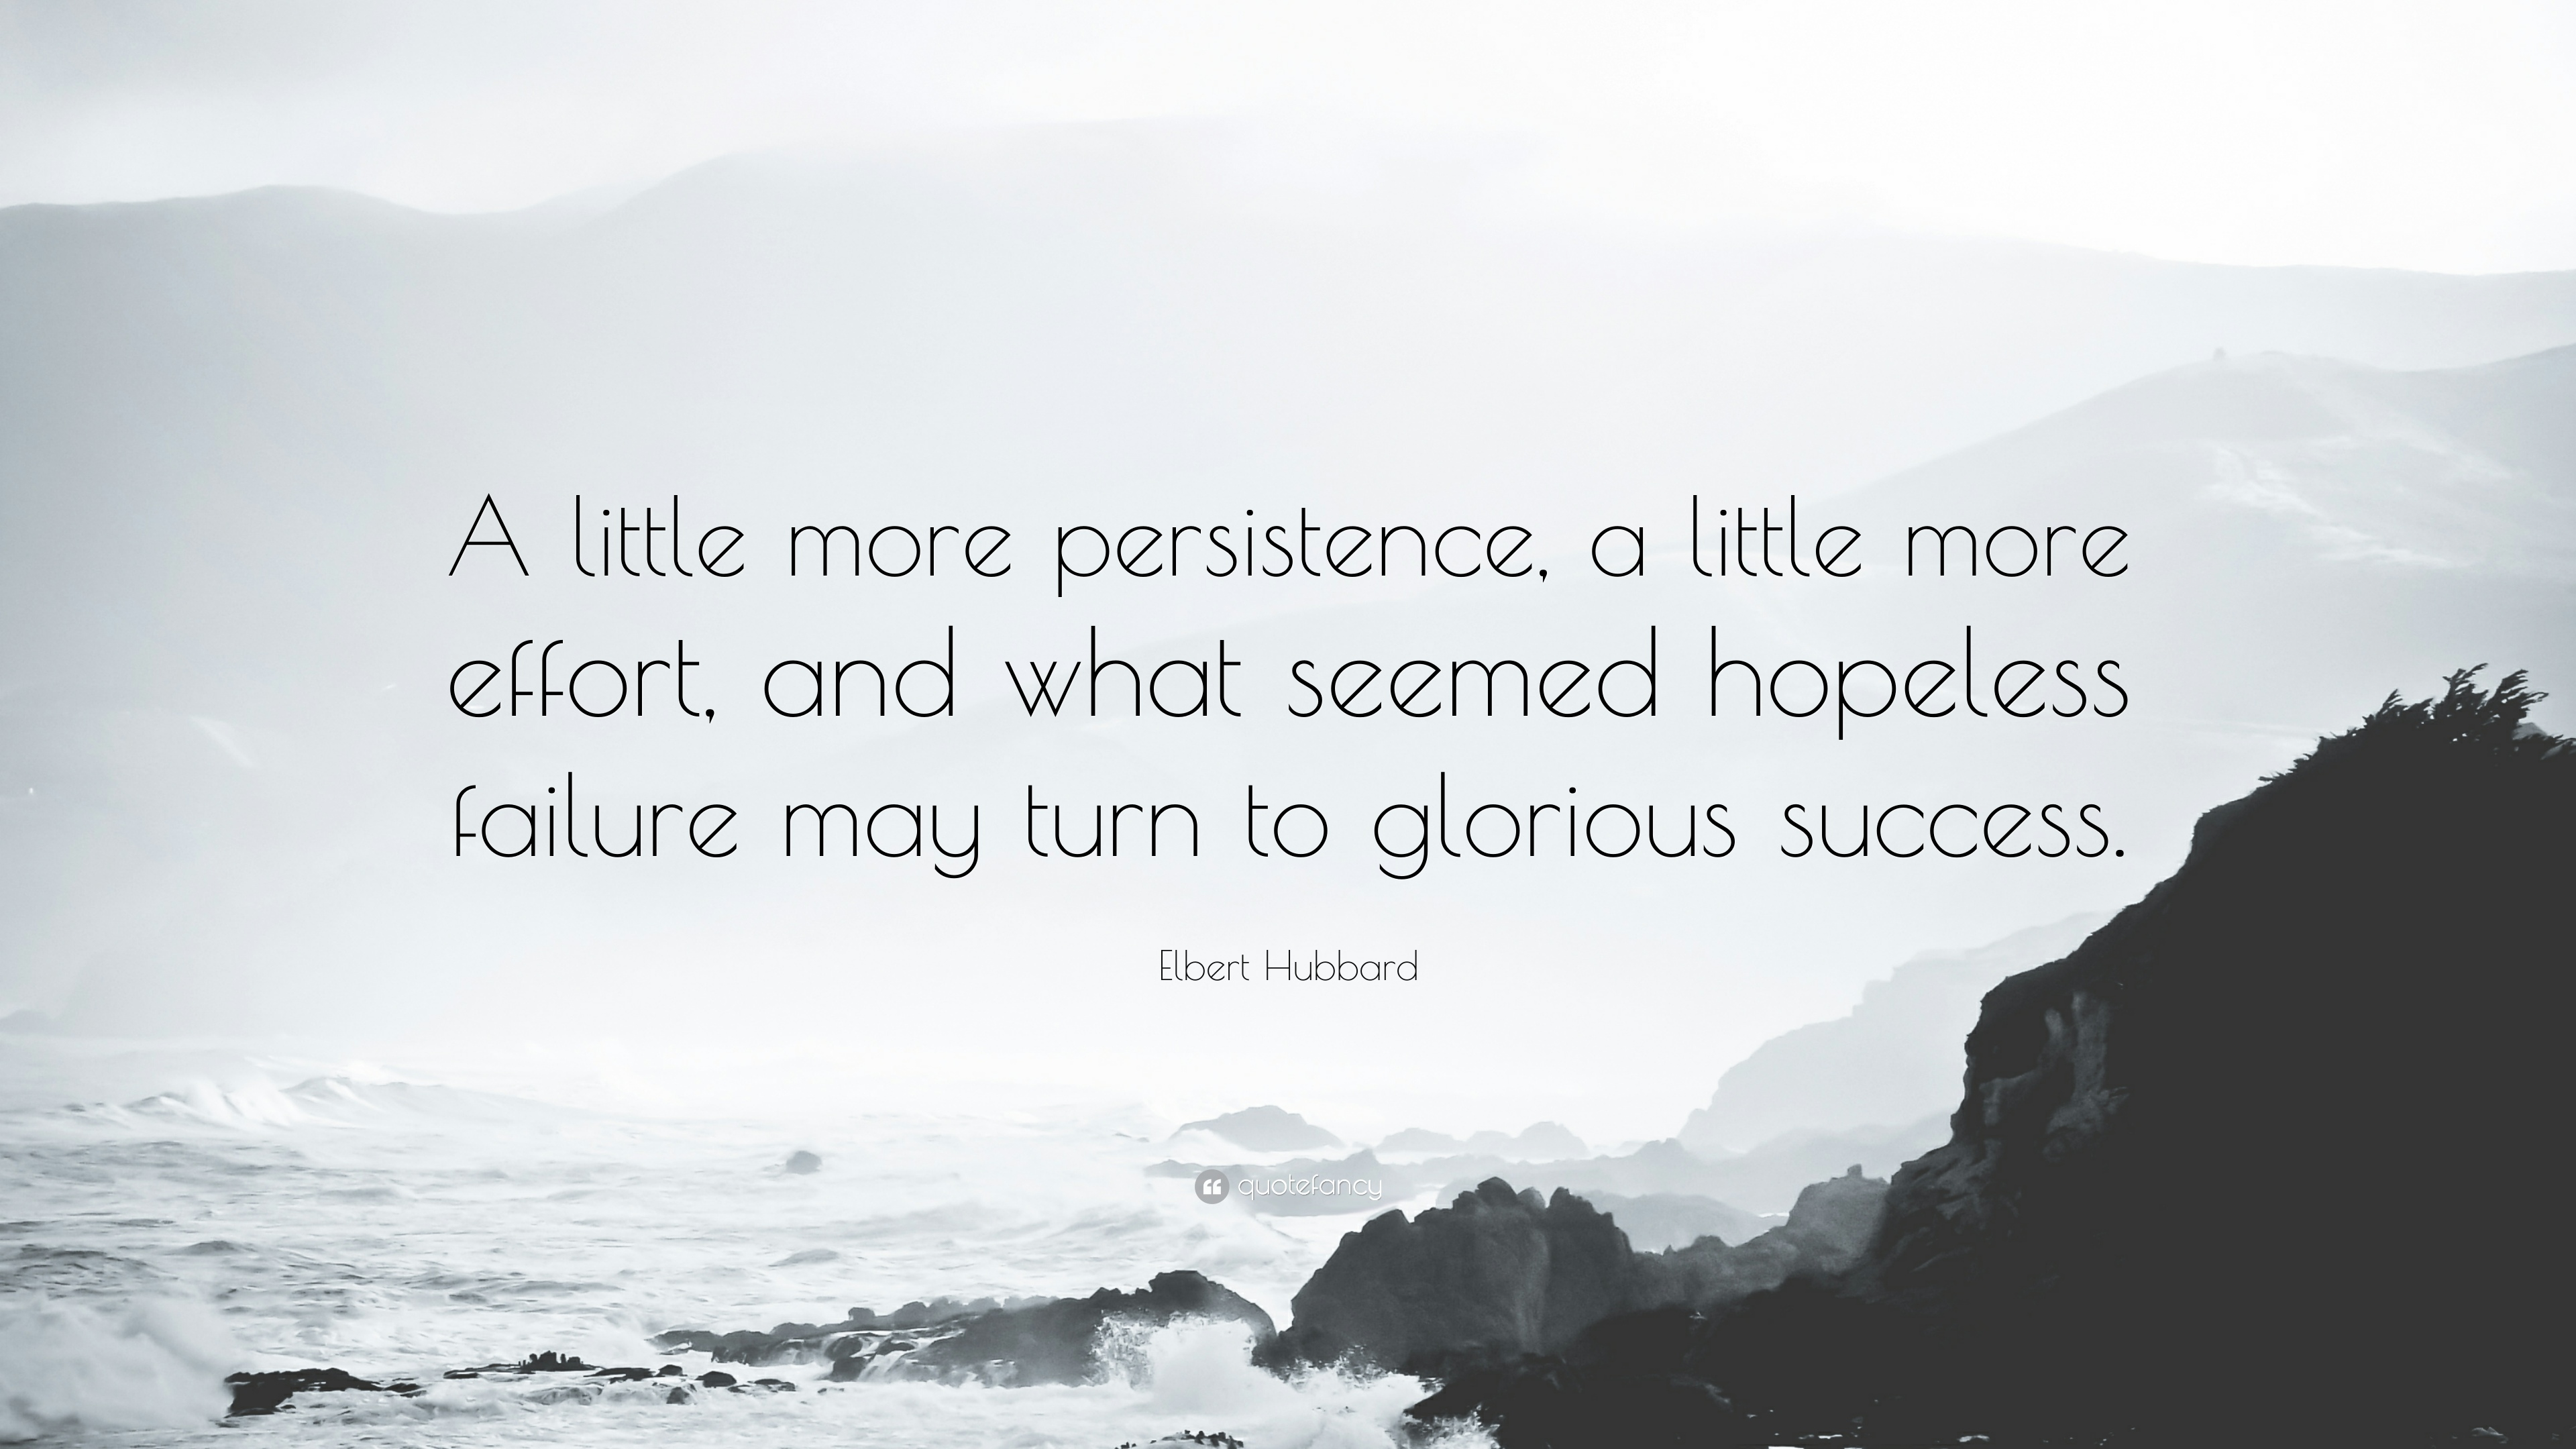 [image] A little more persistence, a little more effort, and what seemed hopeless failure may turn to glorious success. — Elbert Hubbard